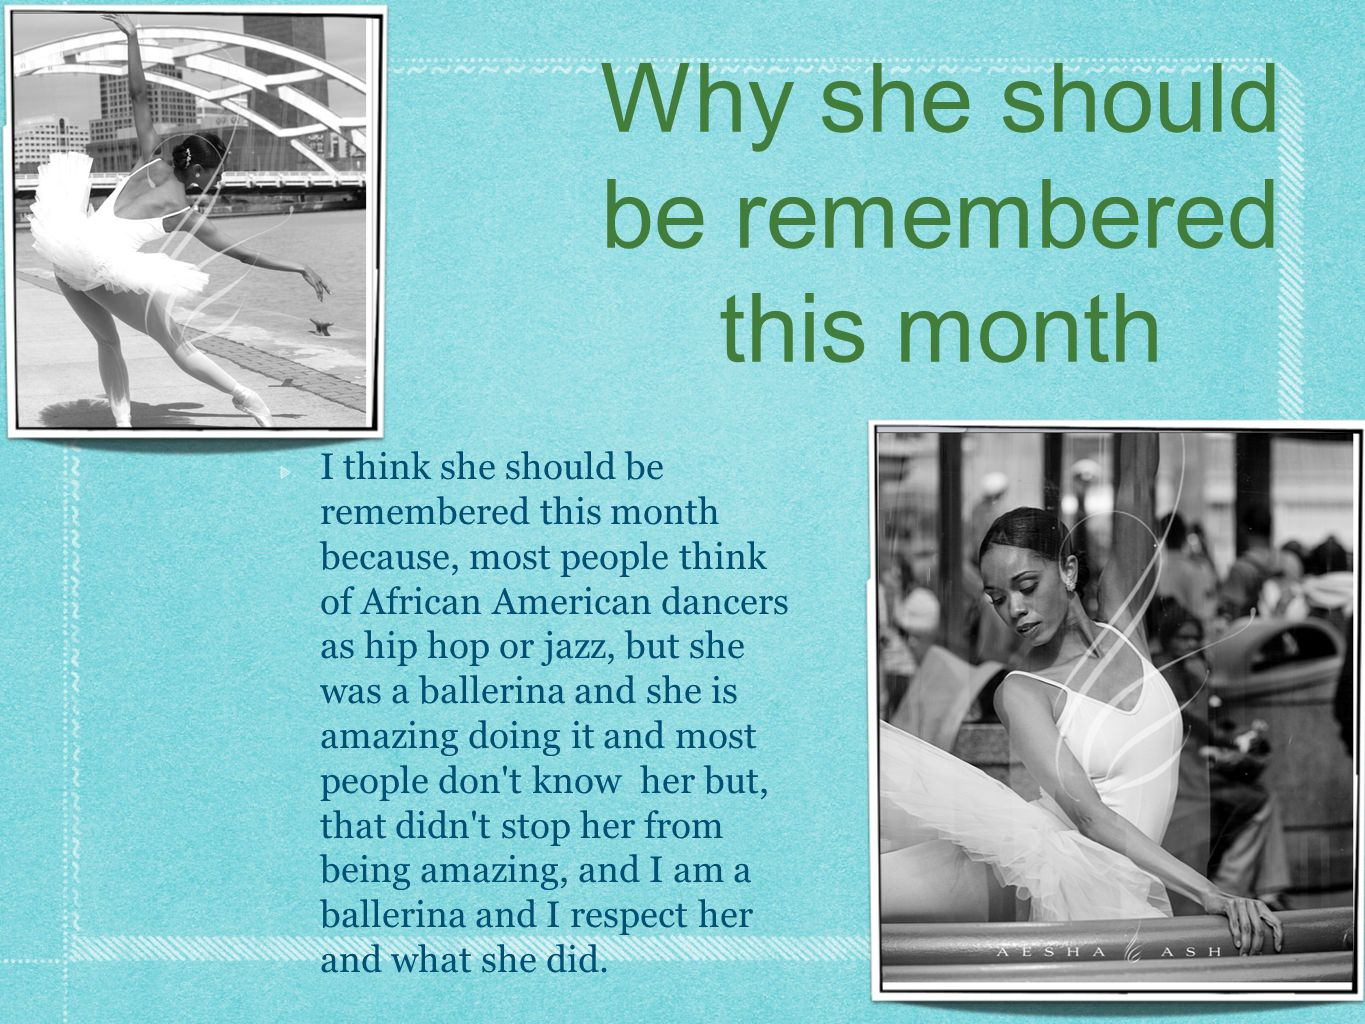 I think she should be remembered this month because, most people think of African American dancers as hip hop or jazz, but she was a ballerina and she is amazing doing it and most people don t know her but, that didn t stop her from being amazing, and I am a ballerina and I respect her and what she did.